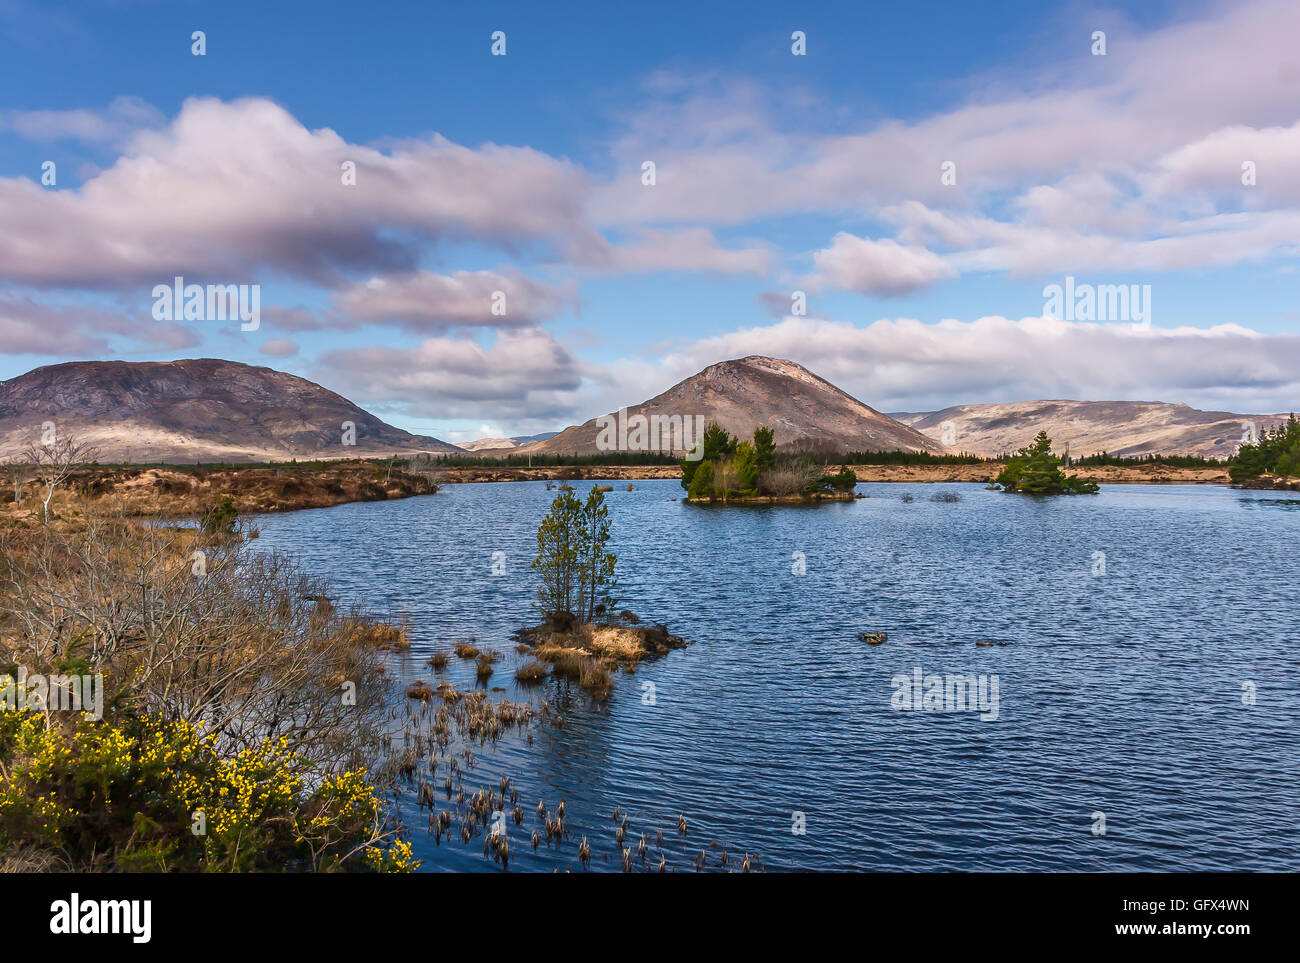 Connemara Galway Ireland - Stock Image